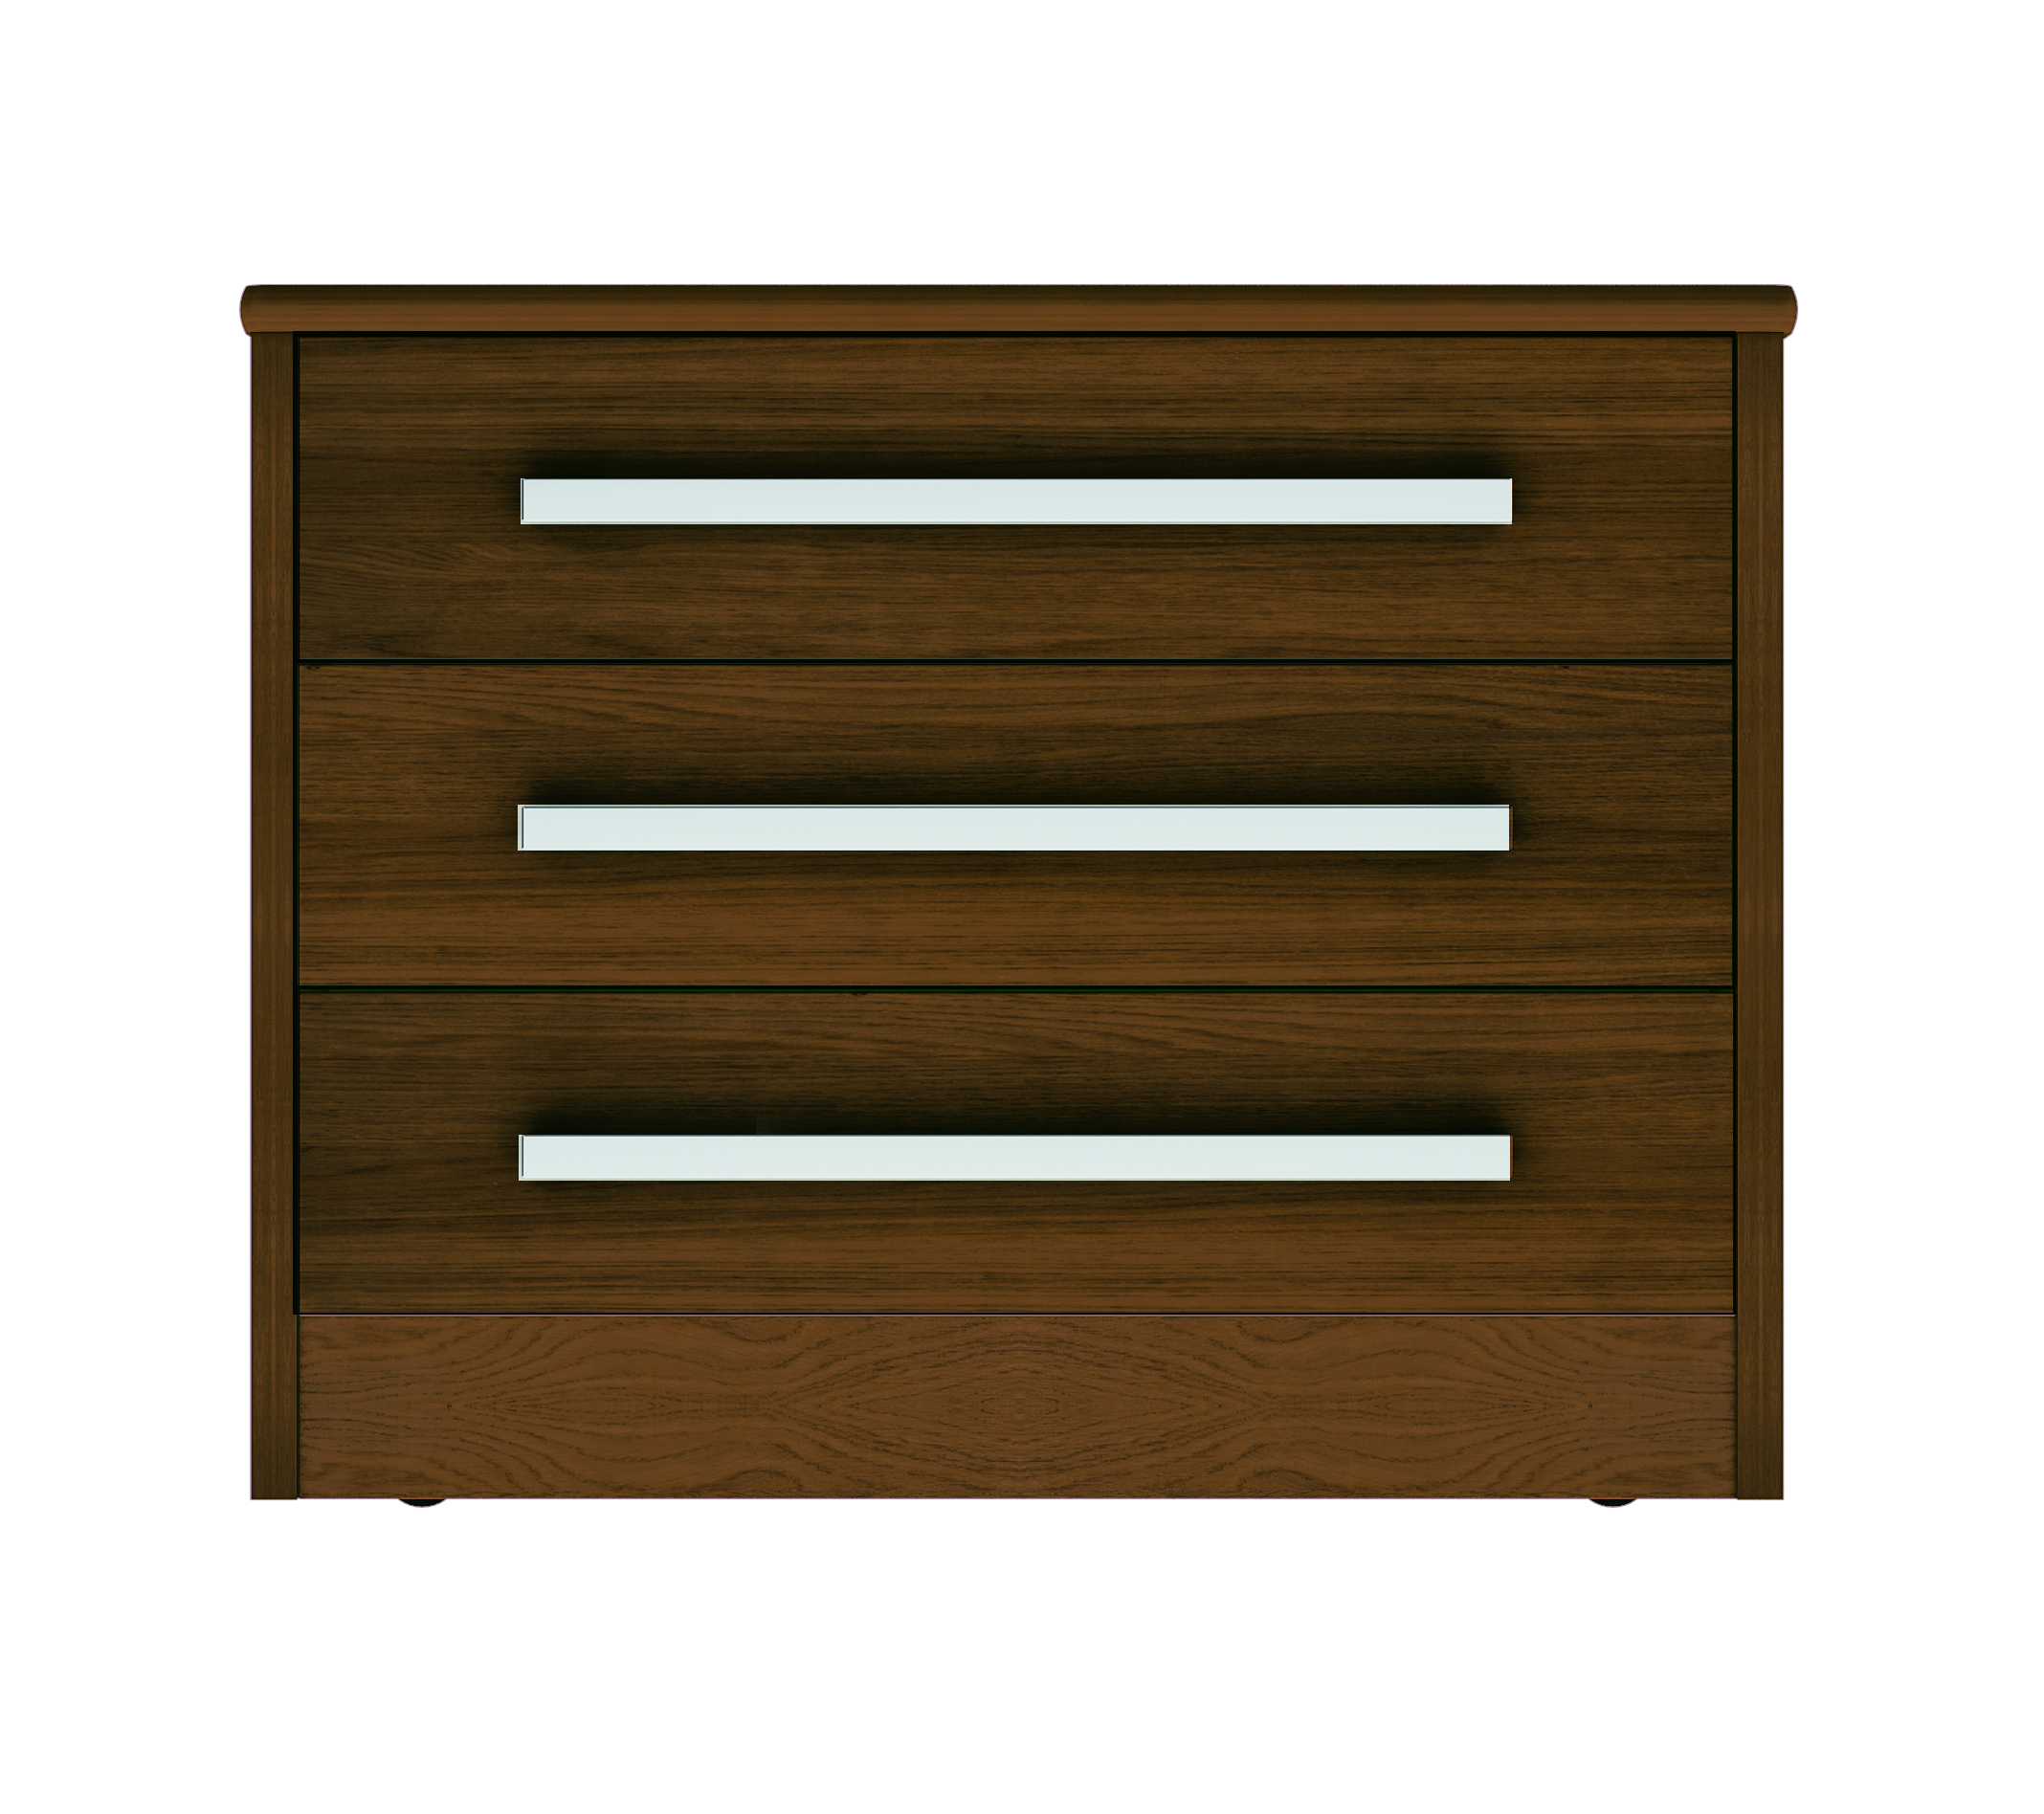 Moda 3 Drawer Chest